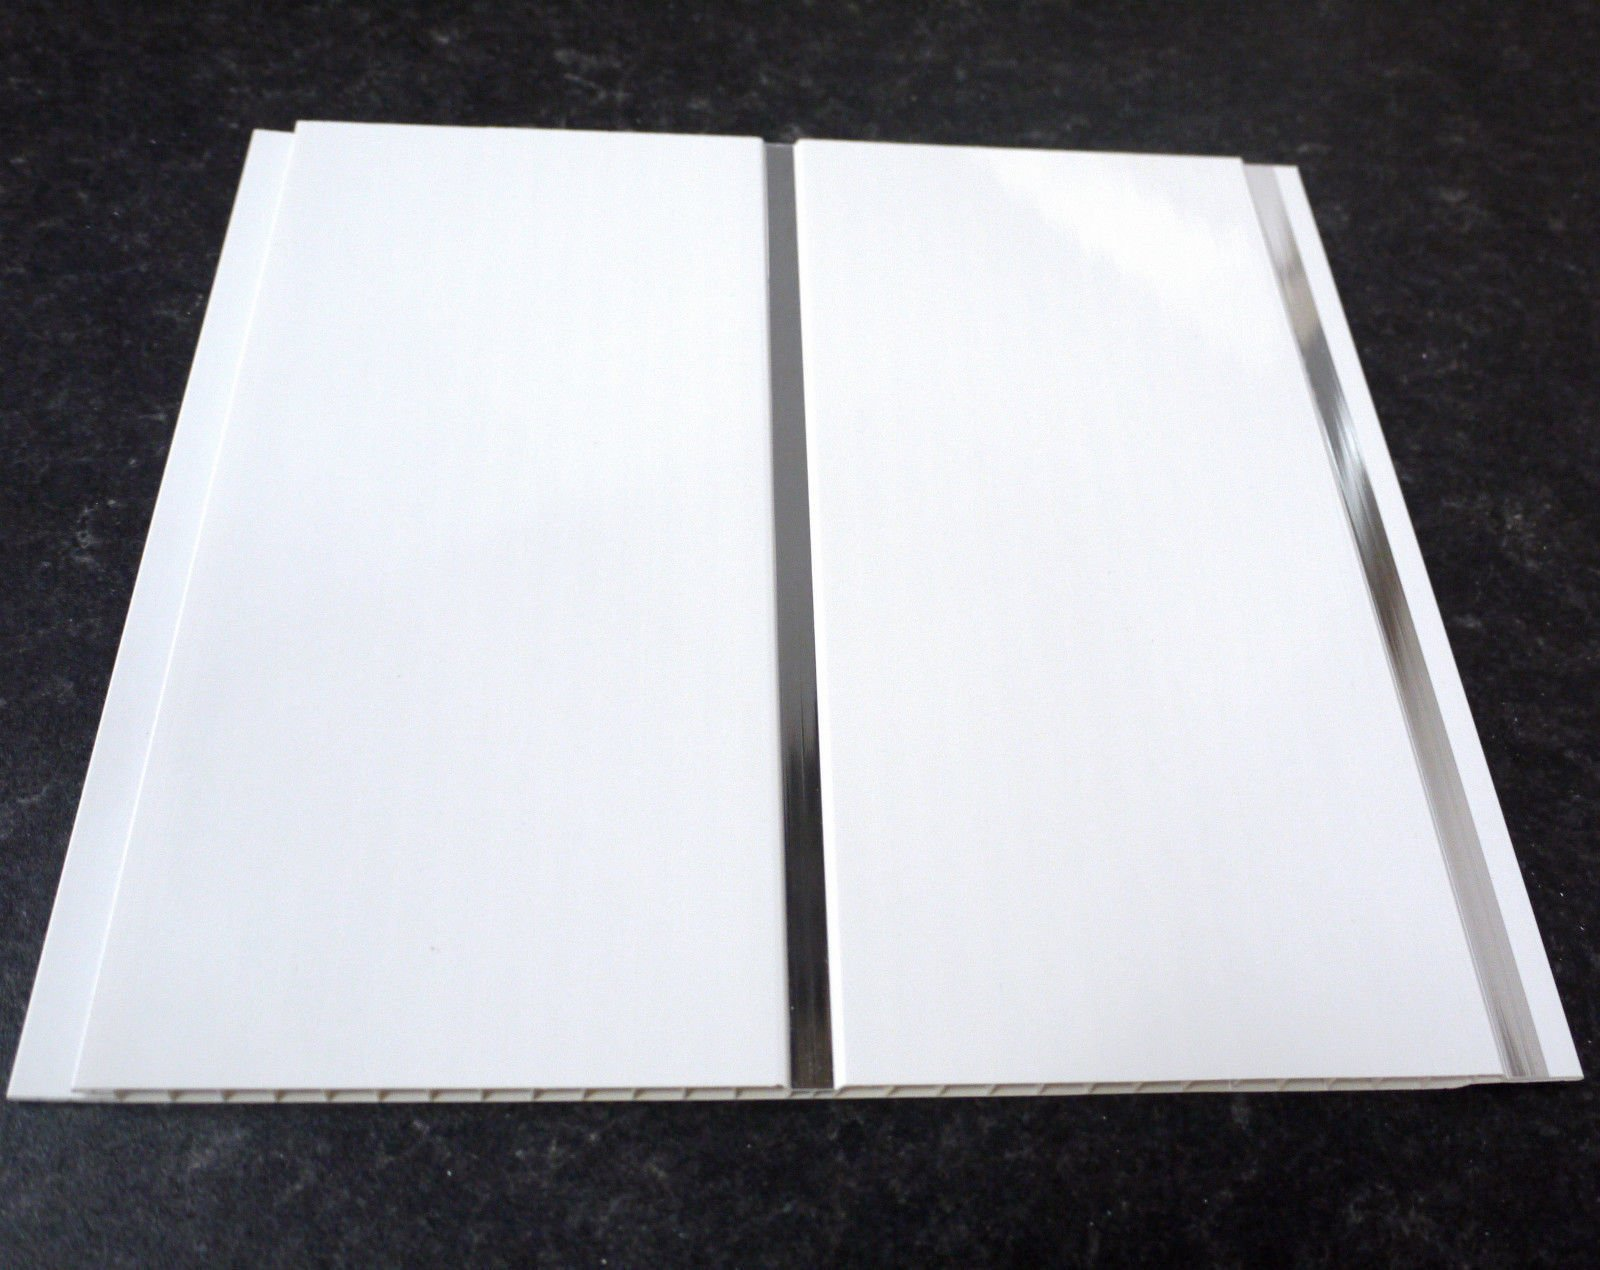 White PVC Ceiling Cladding: Amazon.co.uk